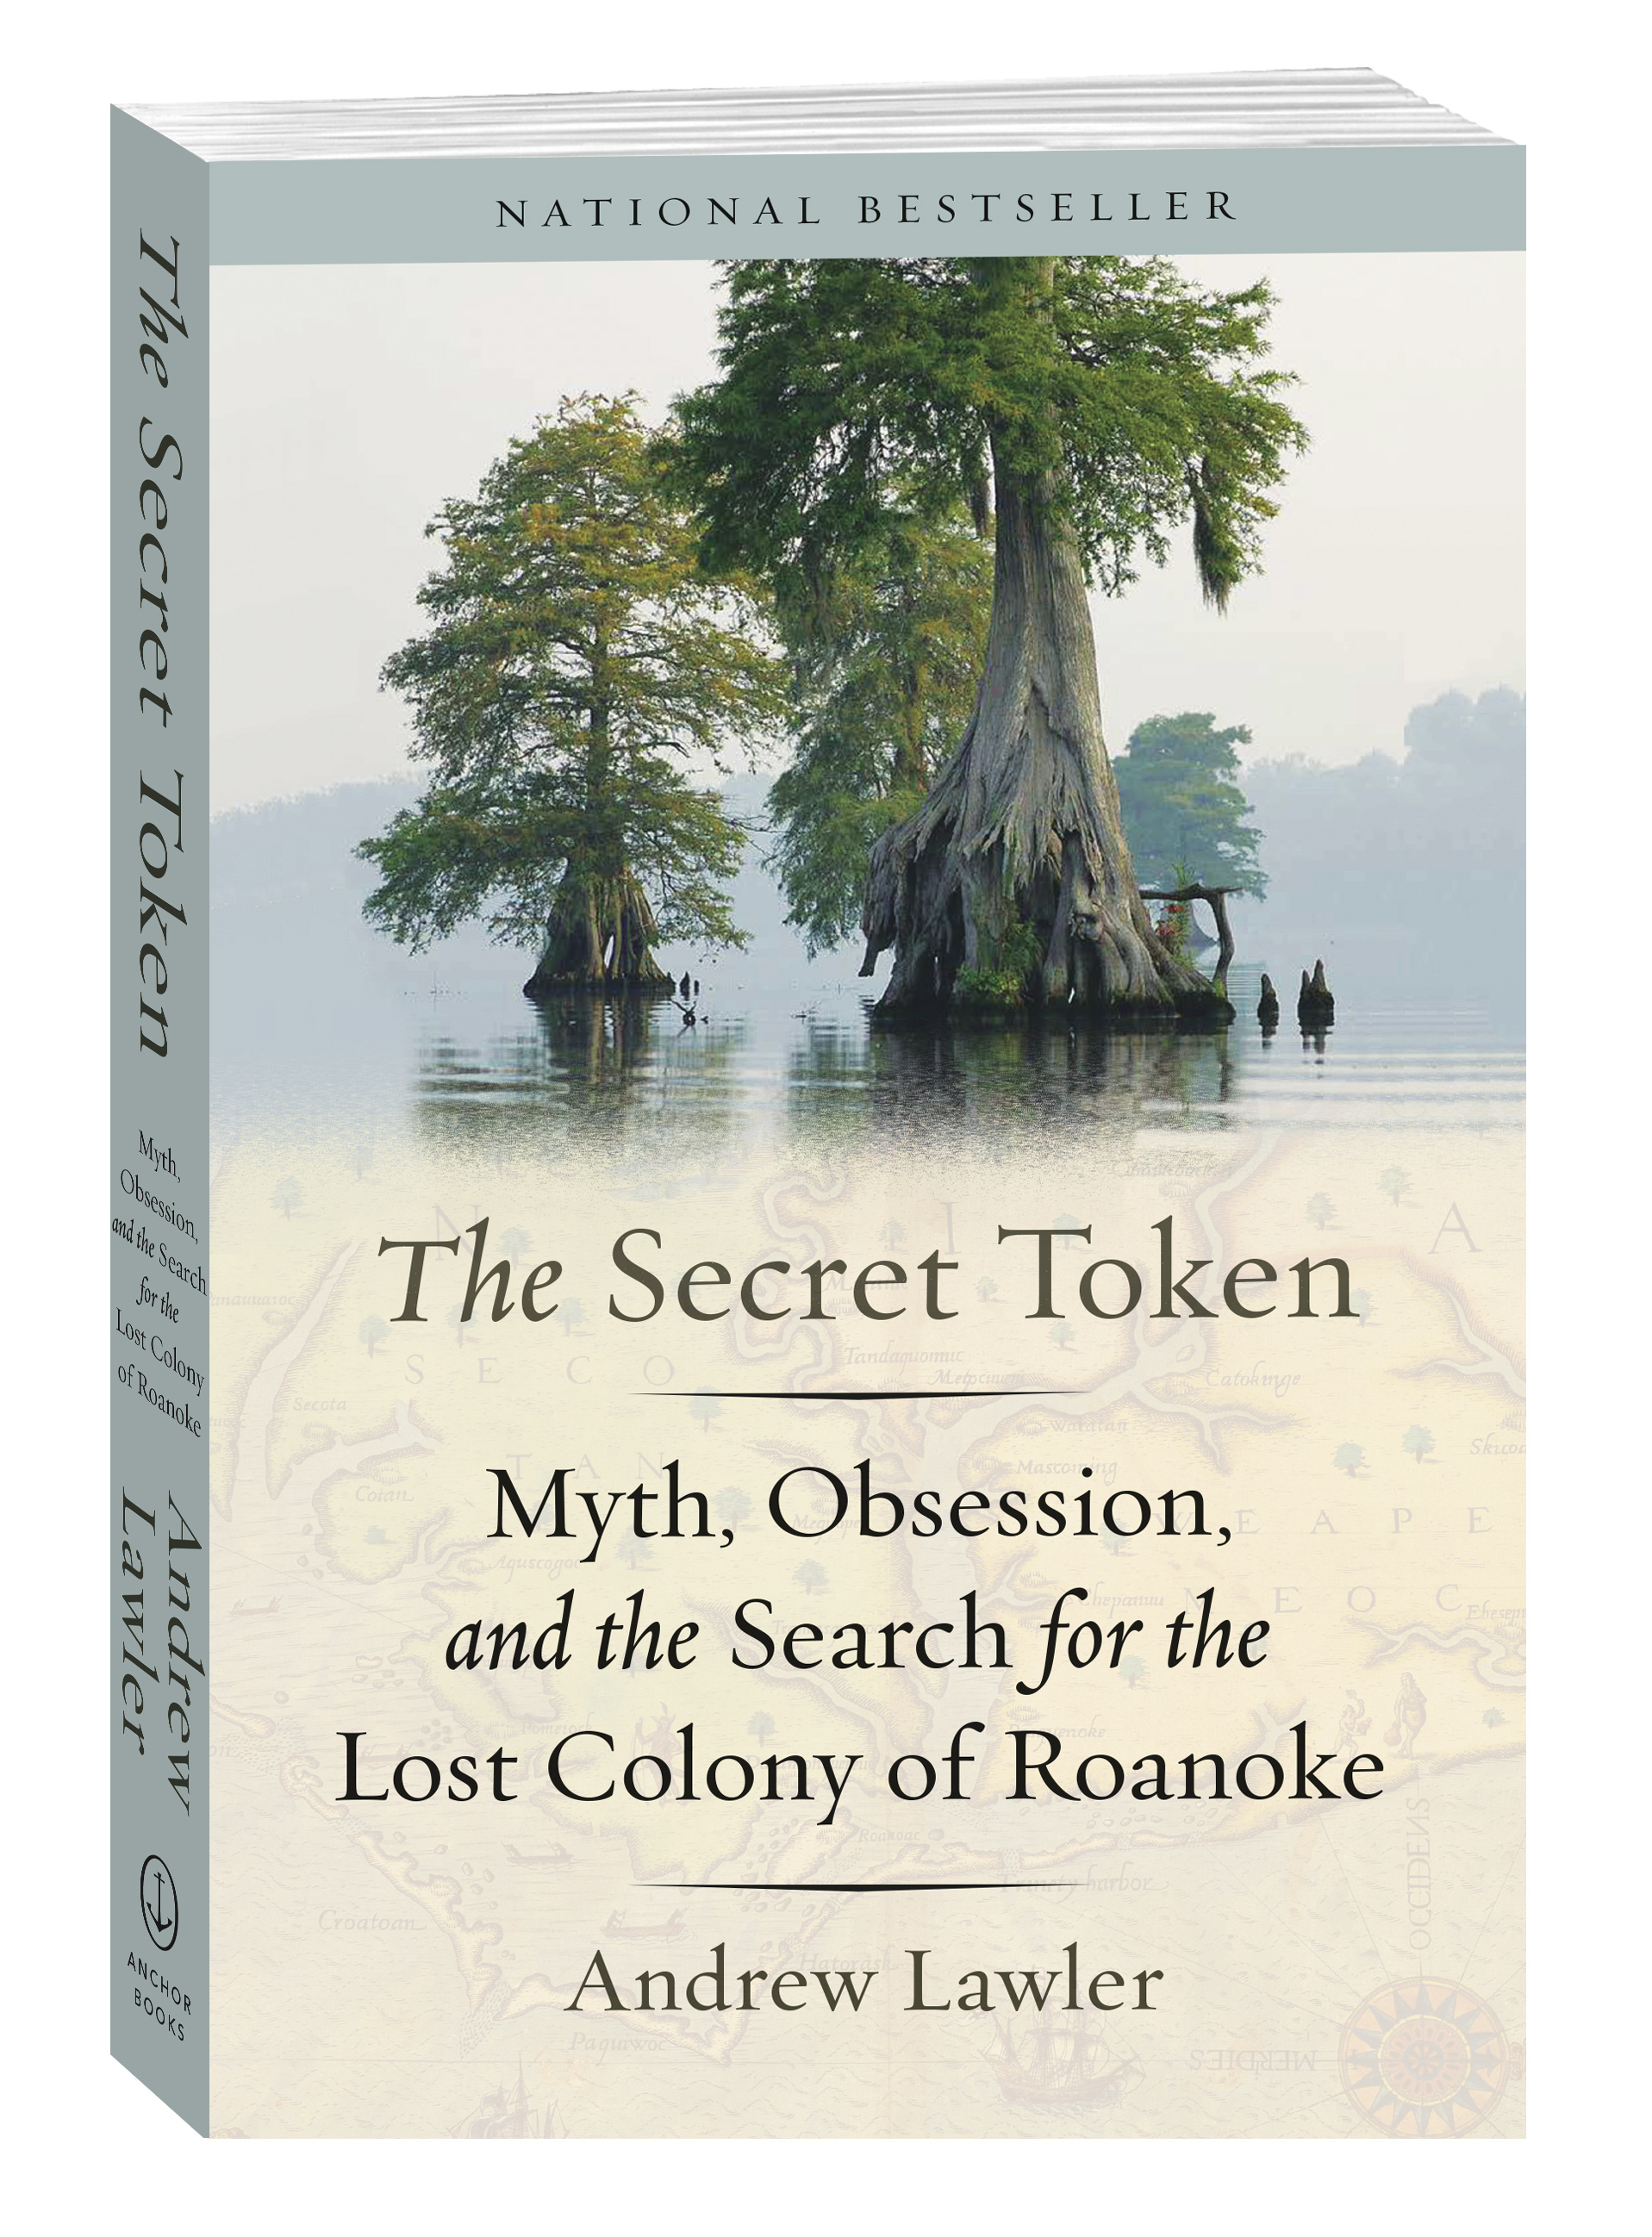 Andrew Lawler: American Horror Story? The Lost Colony of Roanoke